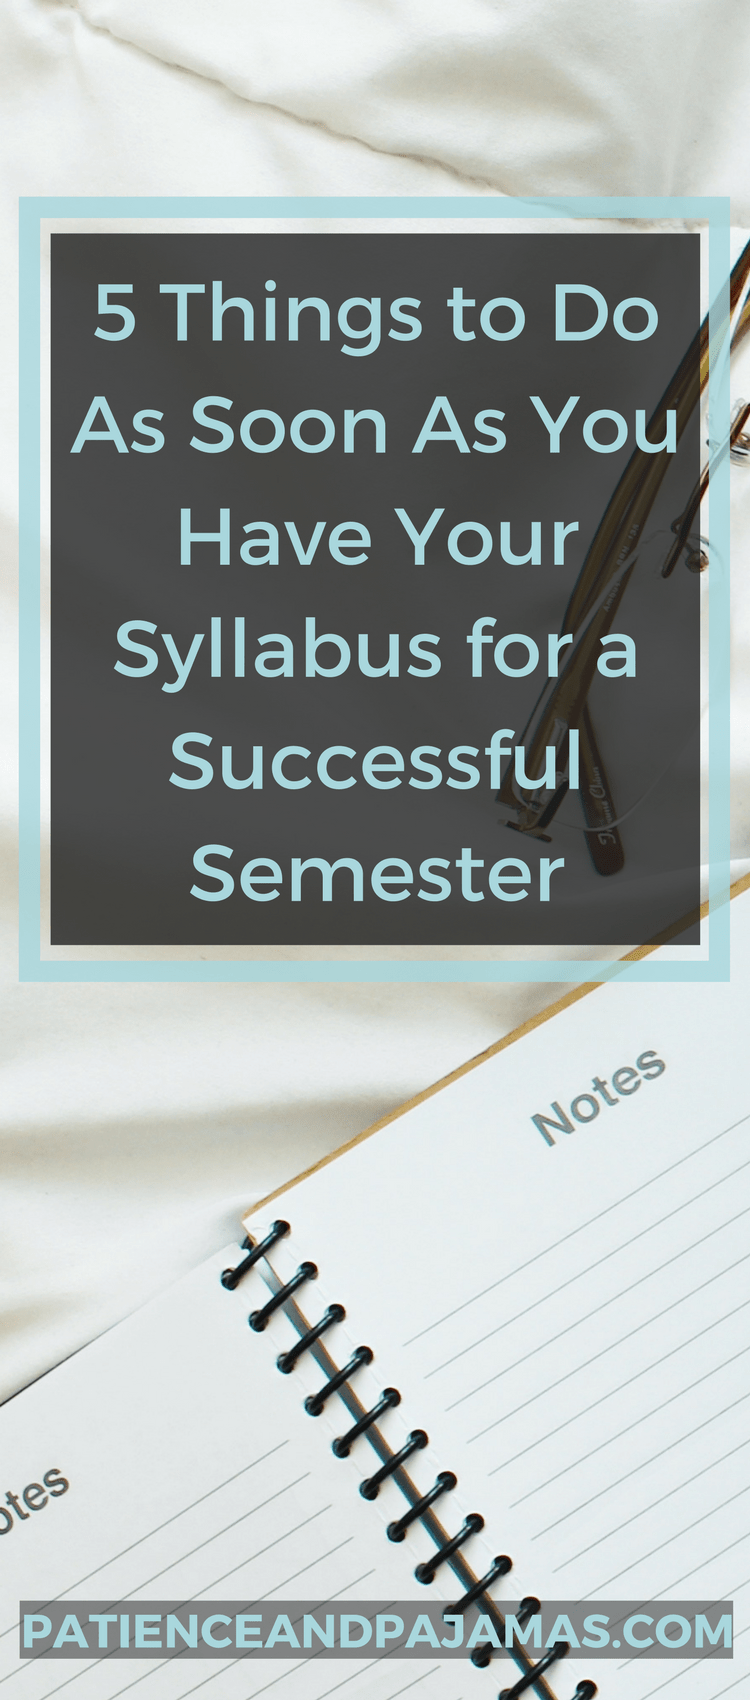 5 Things to Do When You Get Your Syllabus to Set Yourself Up for Success!